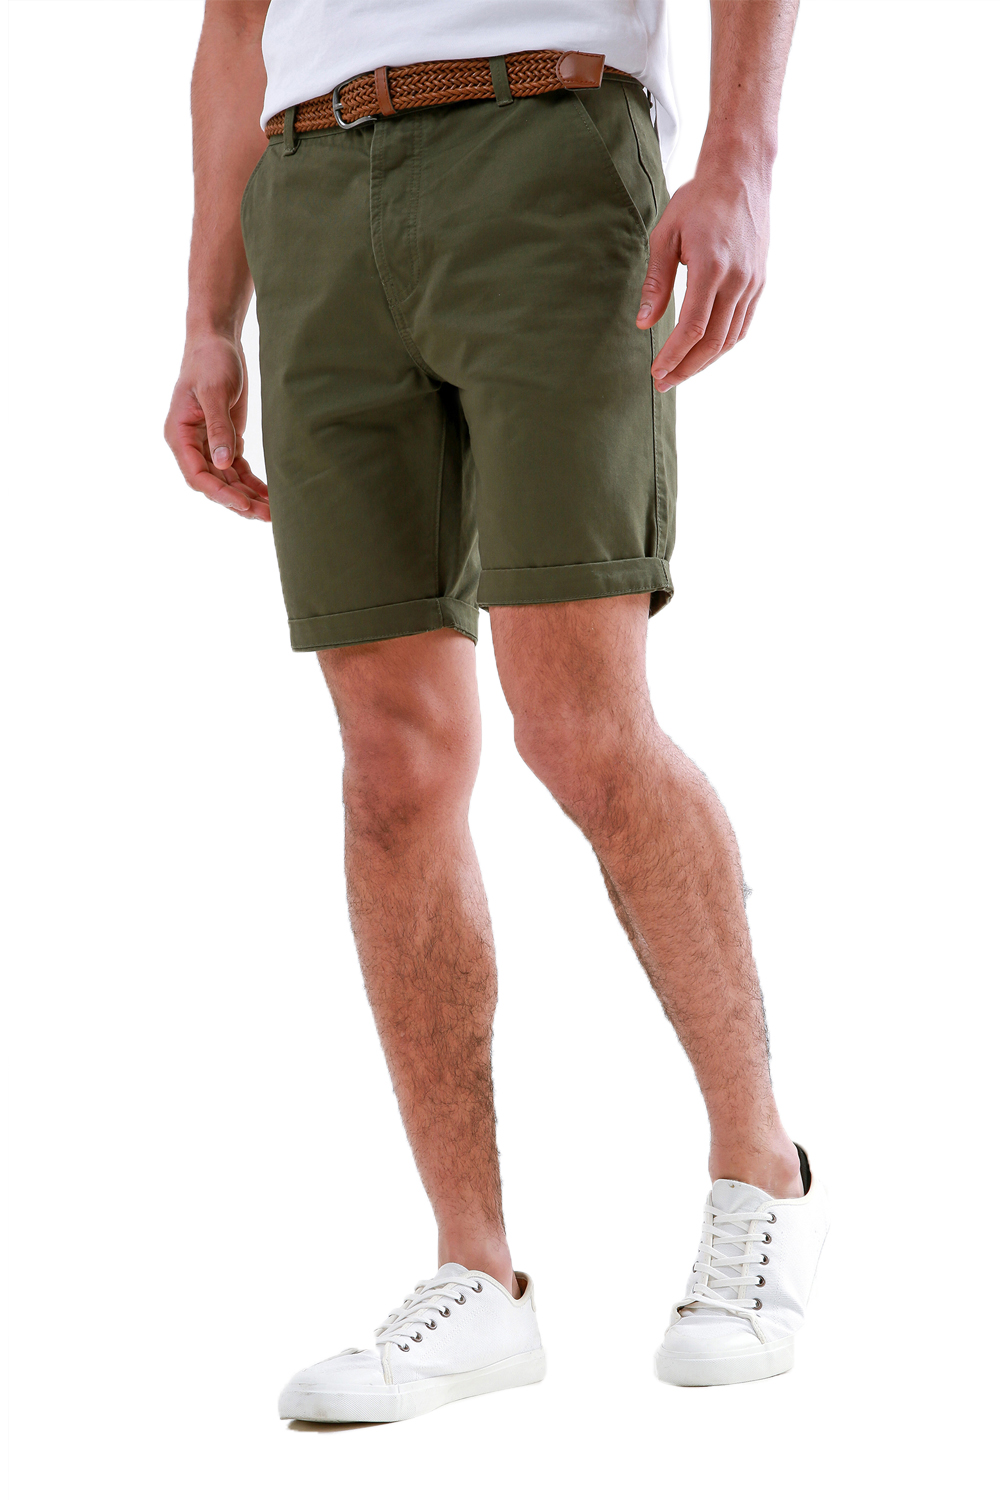 Threadbare-Mens-Slim-Fit-Belted-Chino-Shorts-Summer-Casual-Cotton-Smart-Bottoms thumbnail 12